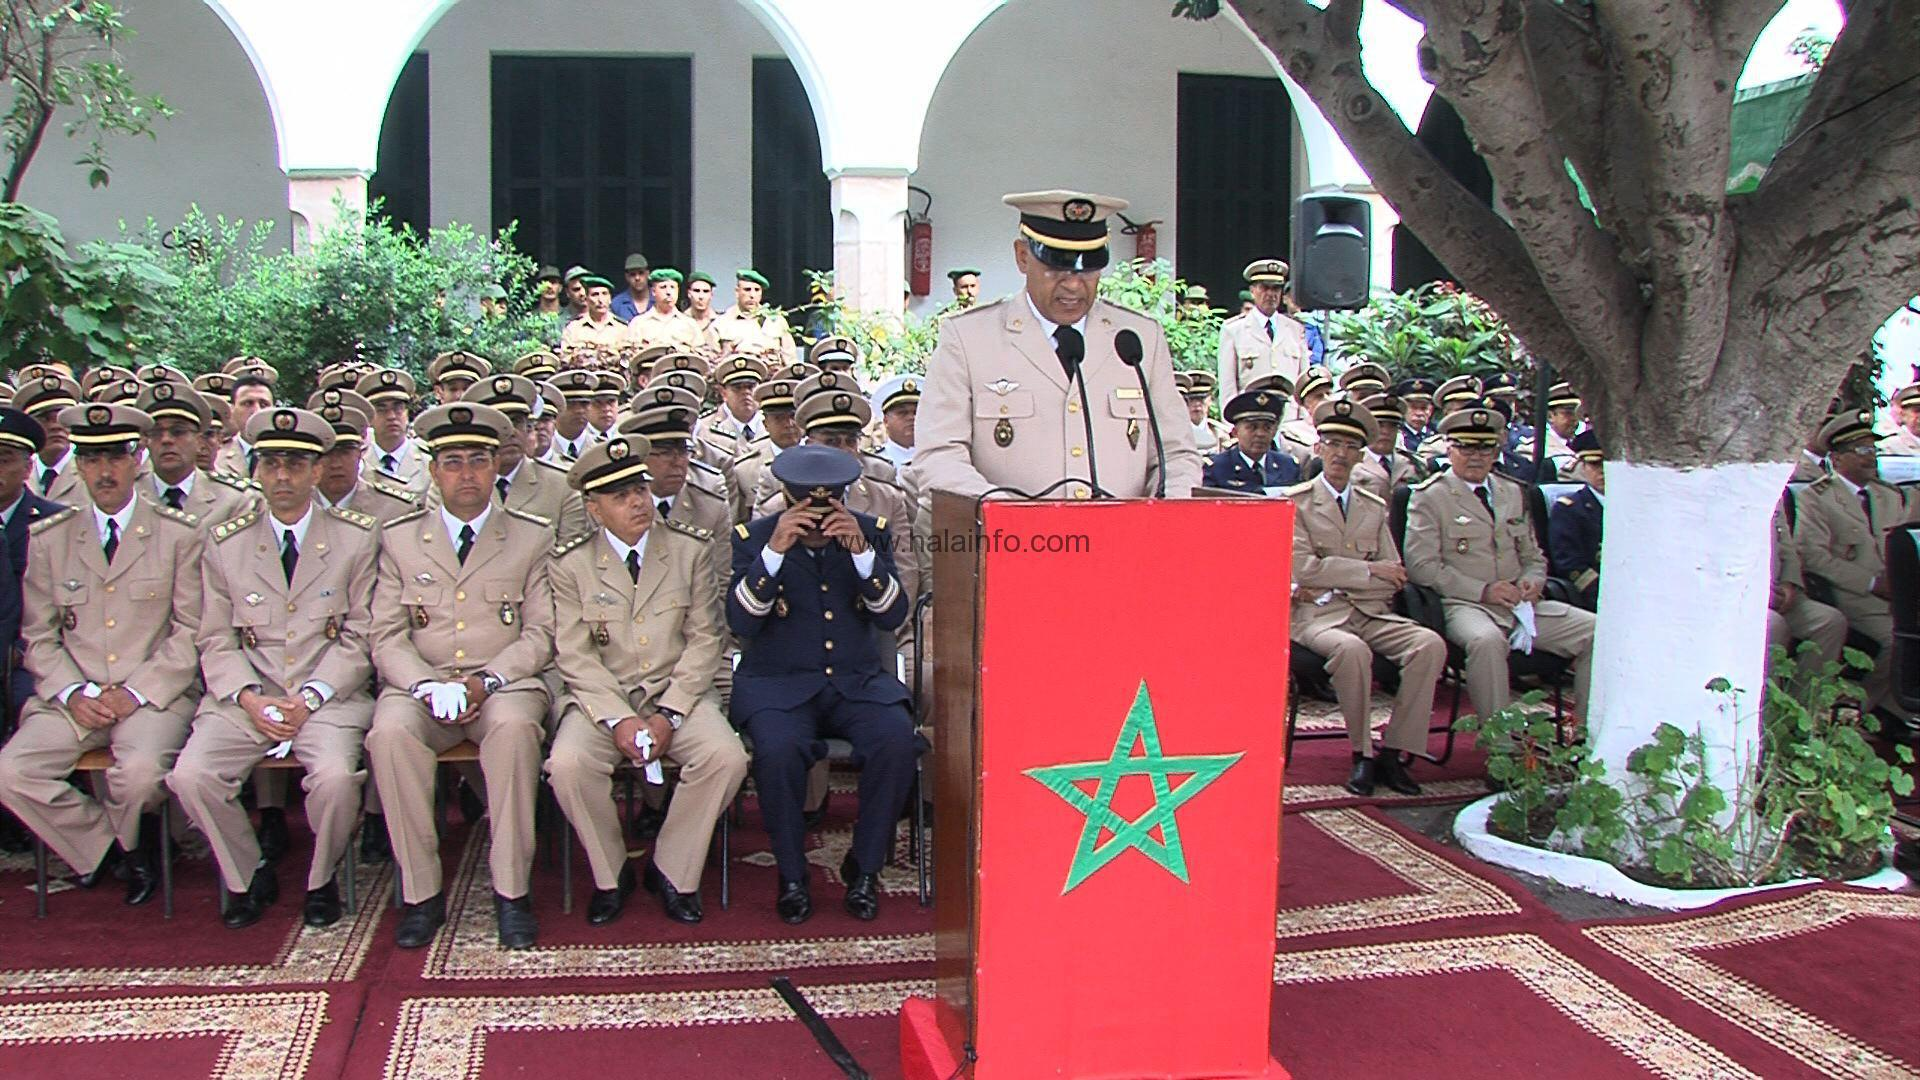 Commanding-officers-of-the-Royal-Moroccan-Army-and-Air-Force-at-a-ceremony-1920-x-1080-Need-iPhon-wallpaper-wp3604225